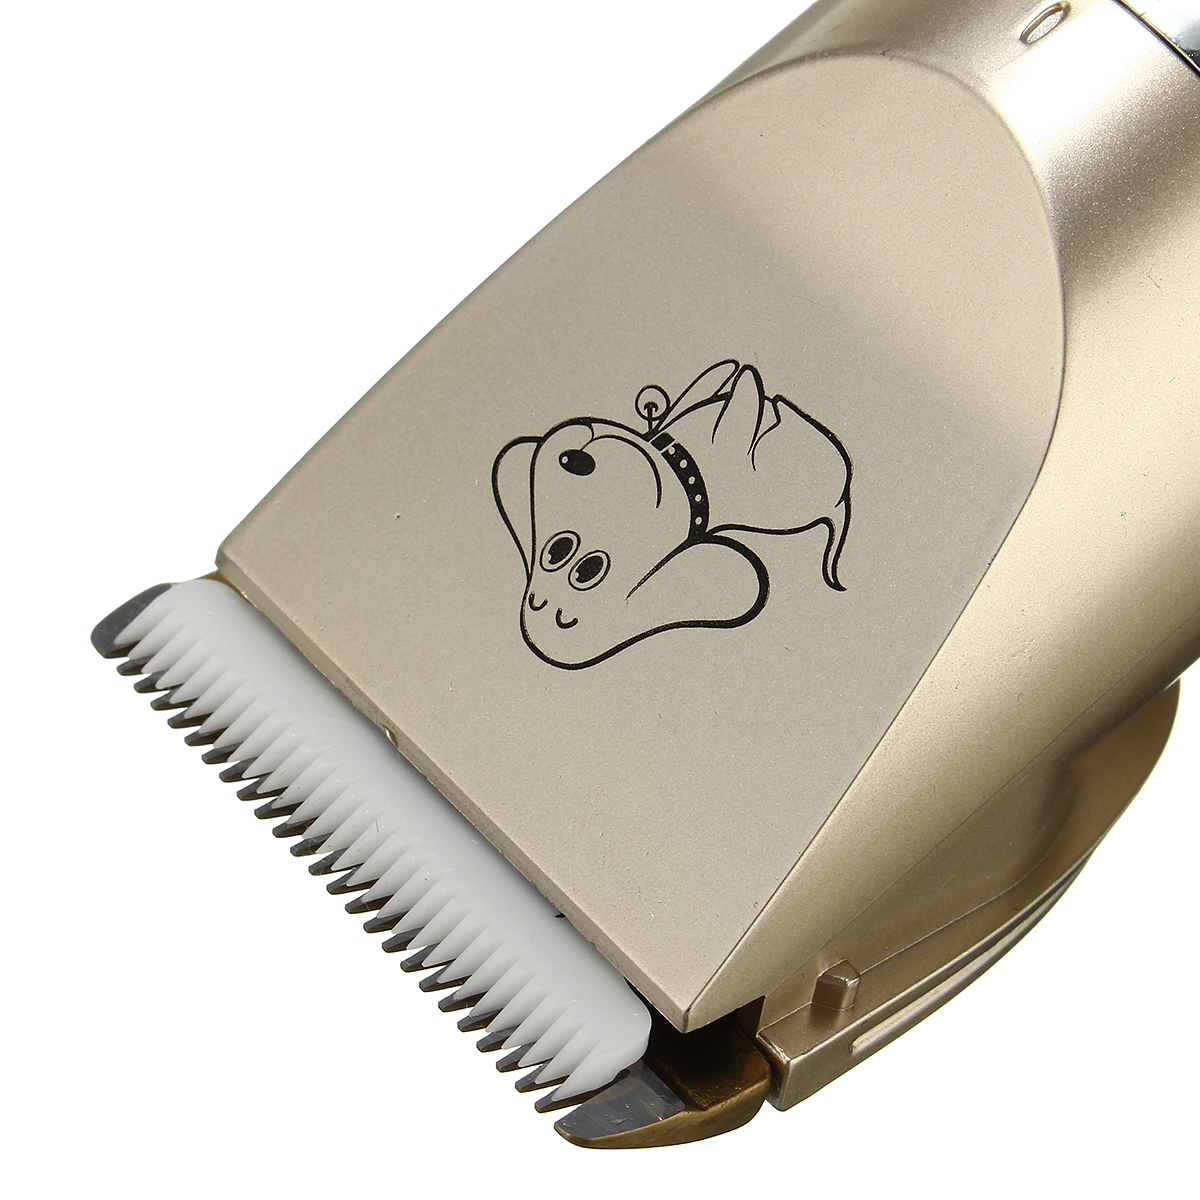 Electric Hair Trimmer Shaver Razor Pet Grooming Clipper